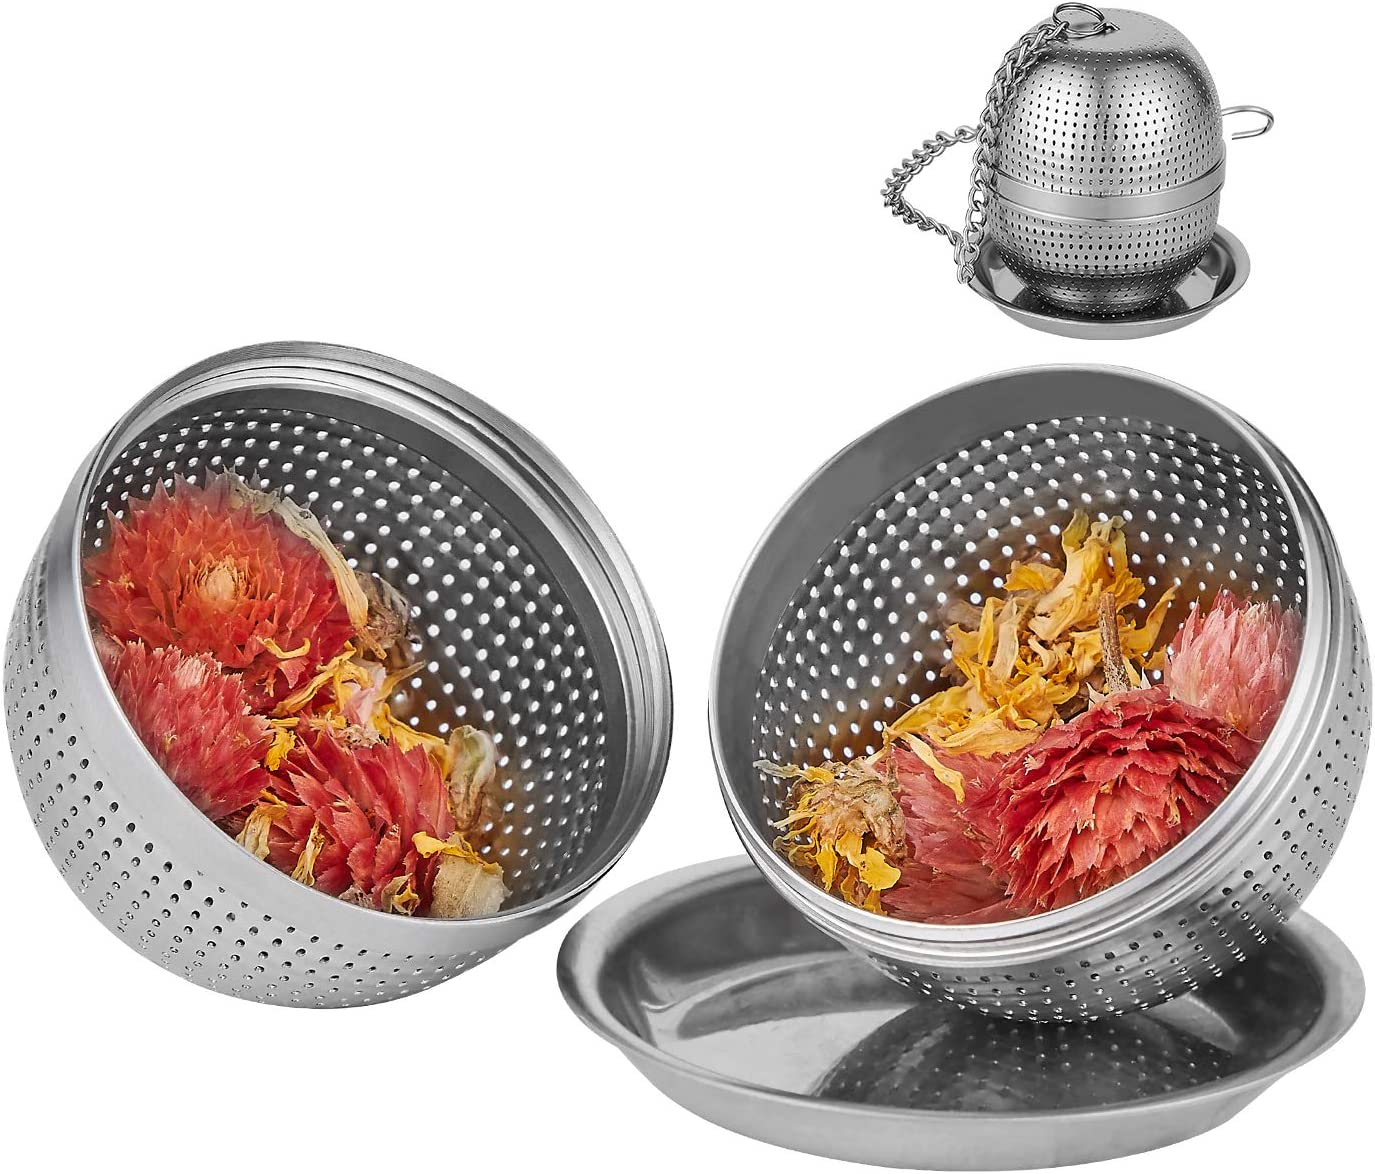 MAI/&BAO 304 Stainless Steel Herb//Spice Ball Tea Strainer Ball Mesh Strainer Filter for Loose Leaf Tea and Mulling Spices Silver 2 Pieces